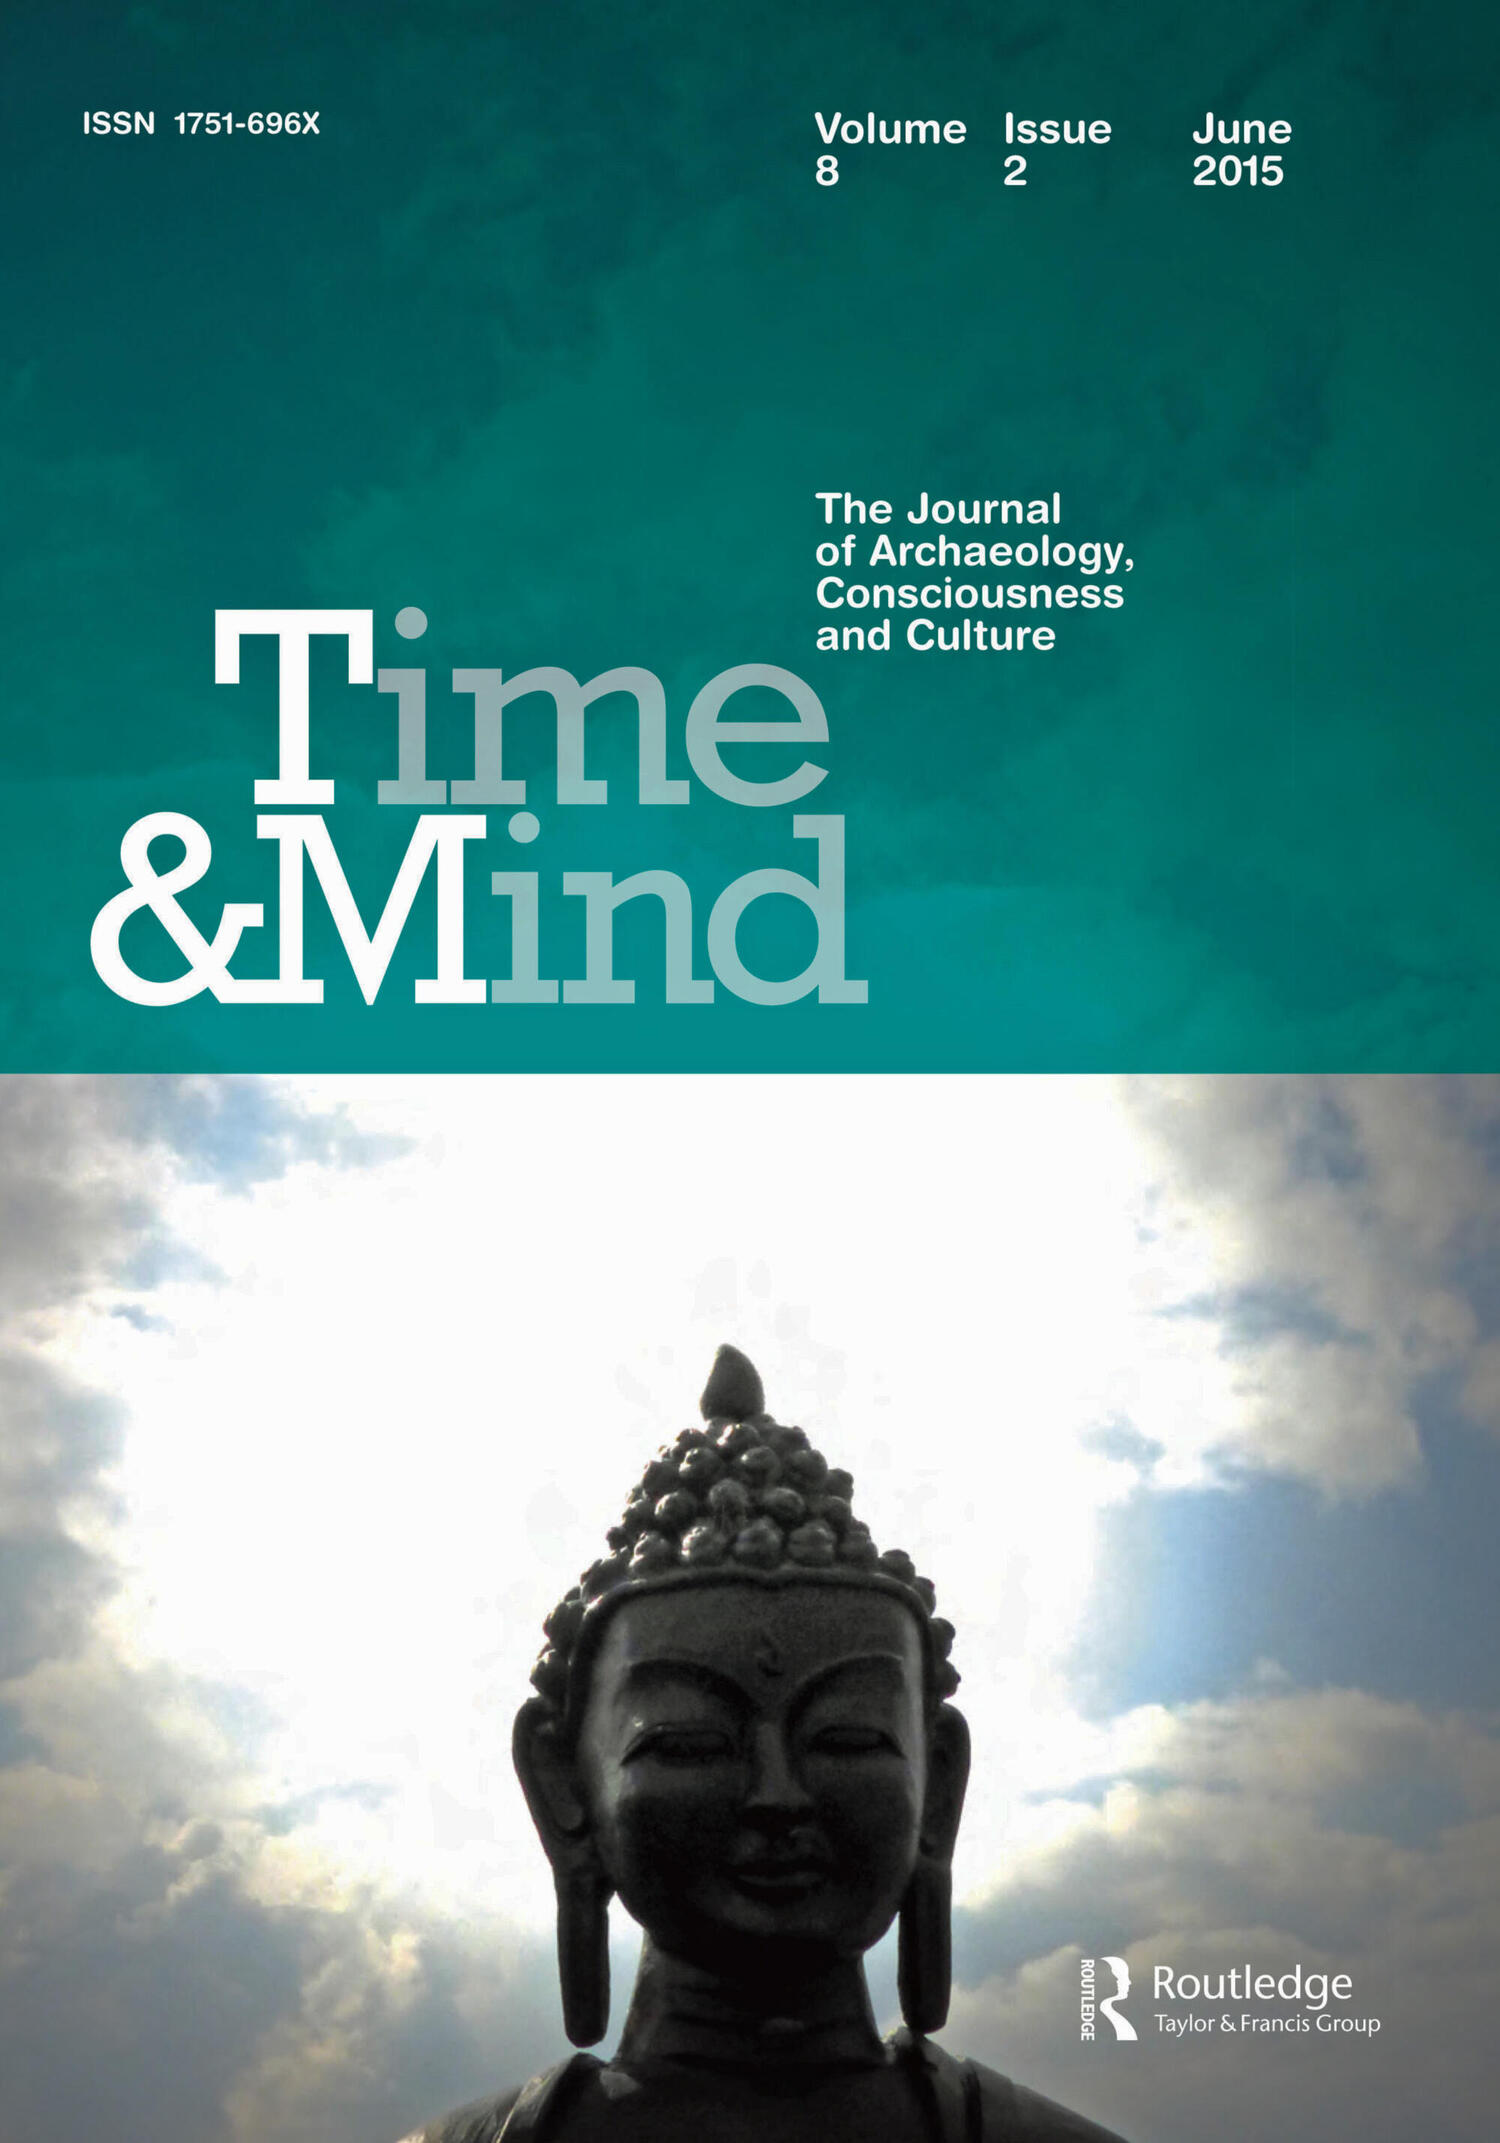 Time & Mind Volume 8 Issue 2